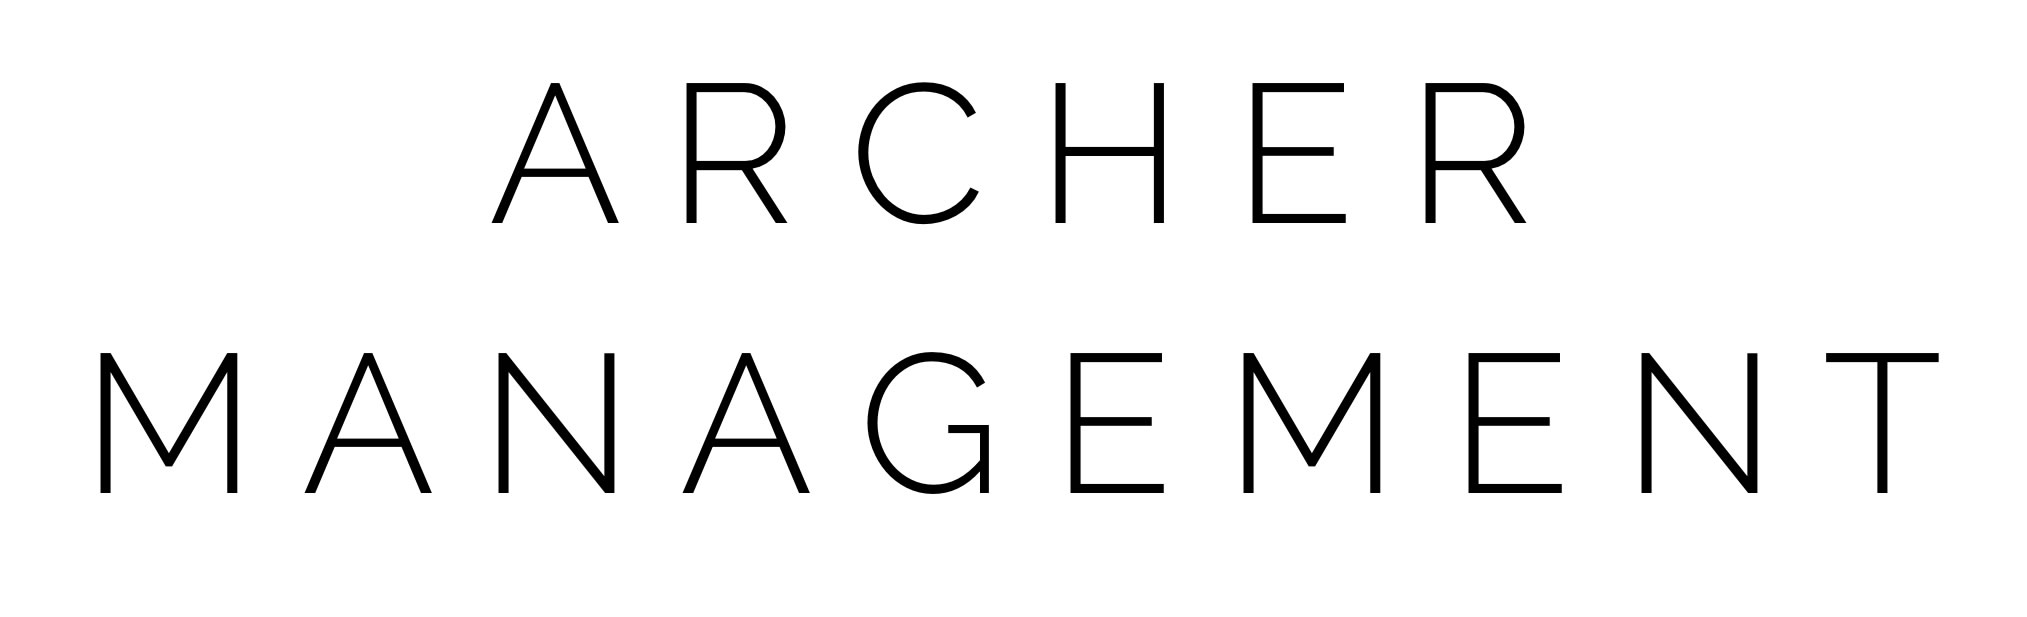 Archer Management / Sydney Acting Agency